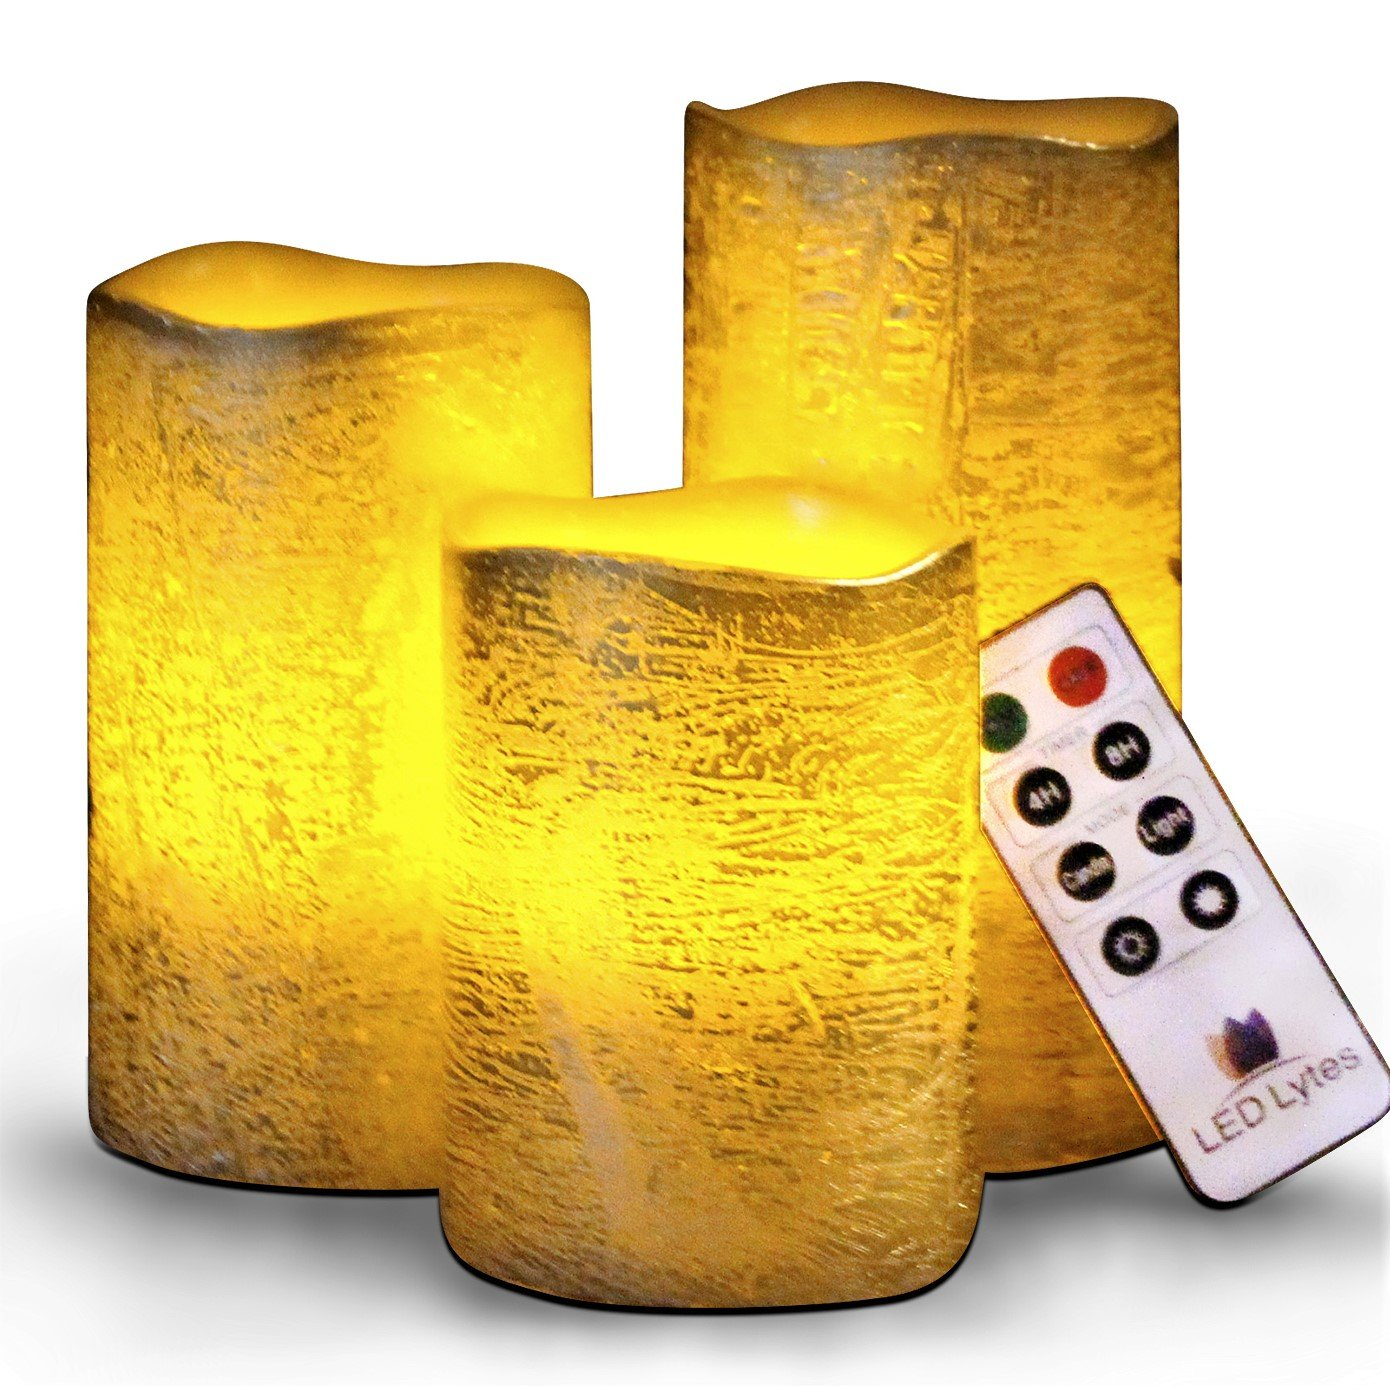 Battery Operated LED Flameless Candles - Set of 3 Round Rustic Gold Coated Ivory Wax with Amber Yellow Flame Flickering LED Candles, auto-Off Timer Remote Control by LED Lytes